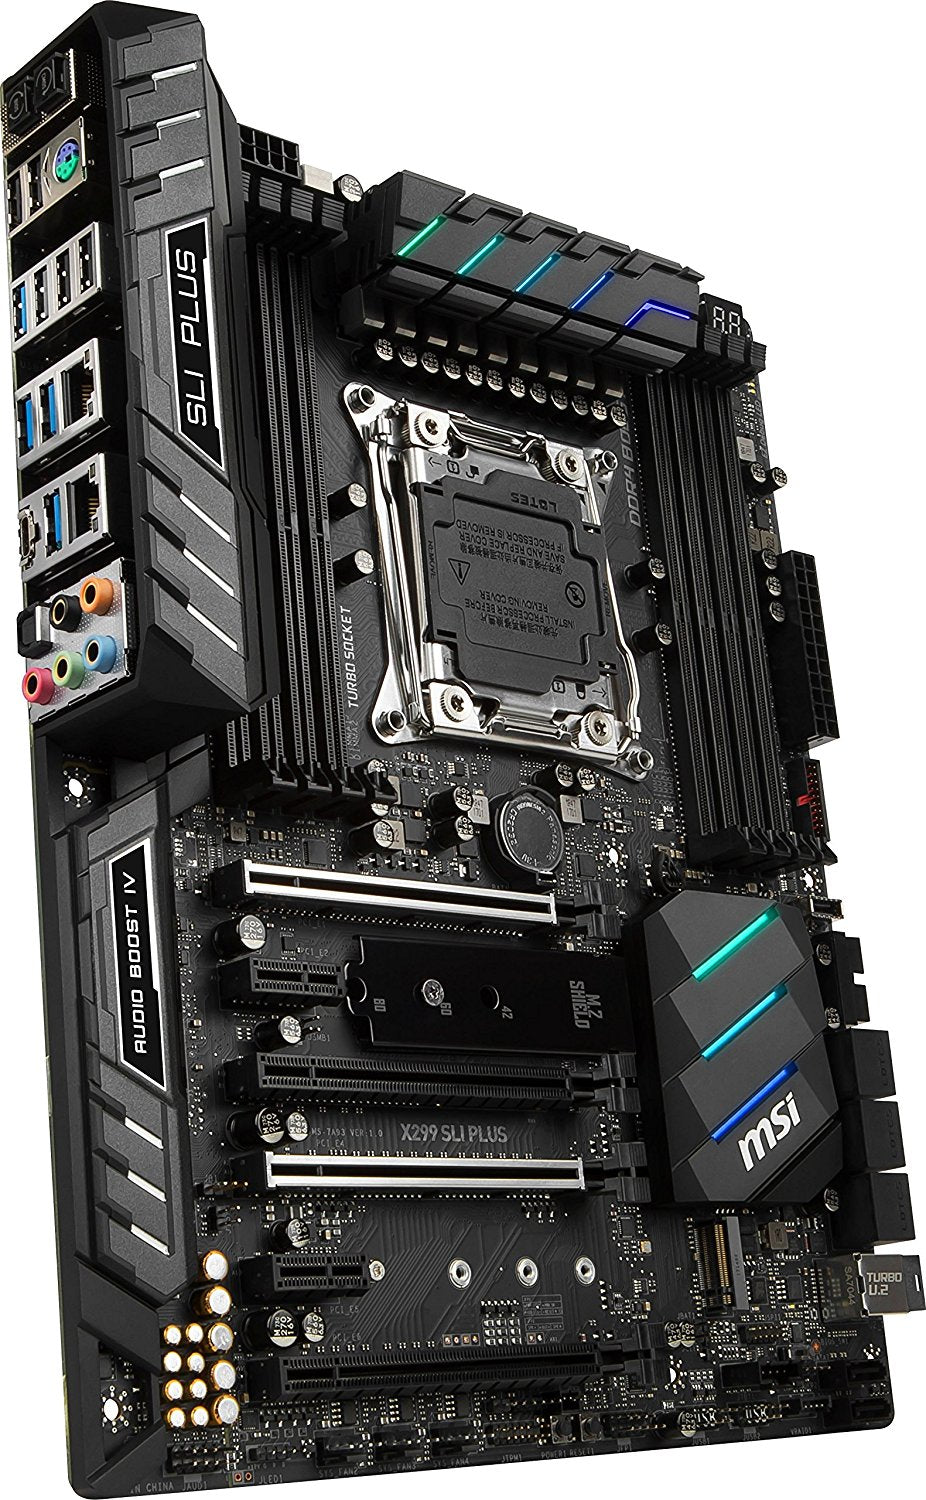 MSI Pro Series Intel X299 LGA 2066 DDR4 USB 3.1 SLI ATX Motherboard (X299 SLI Plus)